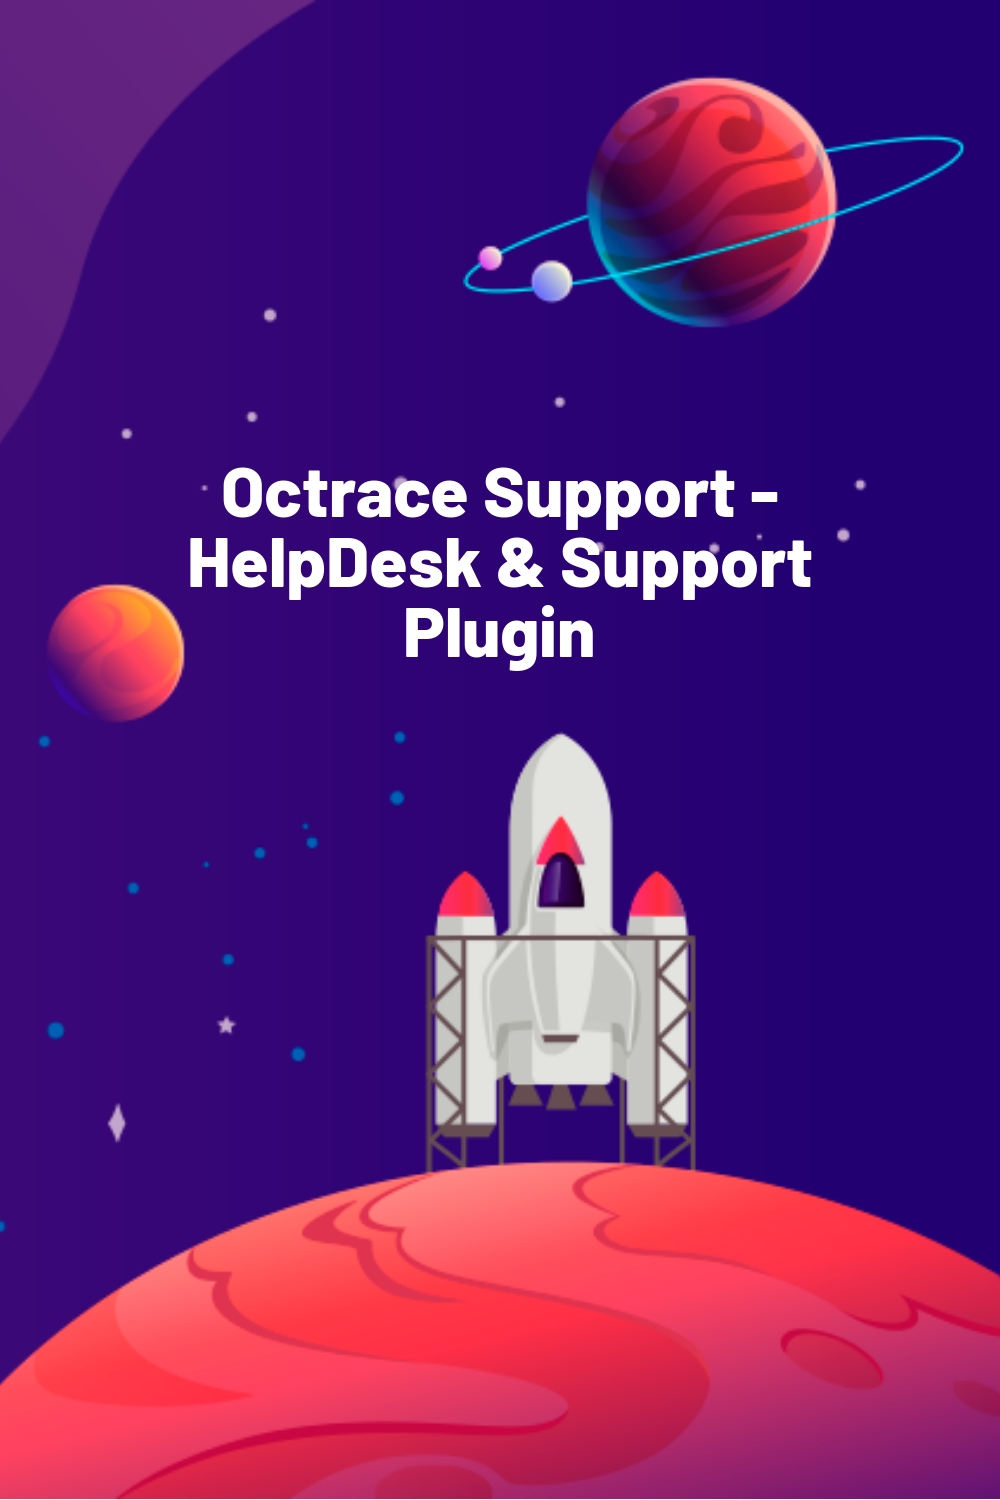 Octrace Support – HelpDesk & Support Plugin